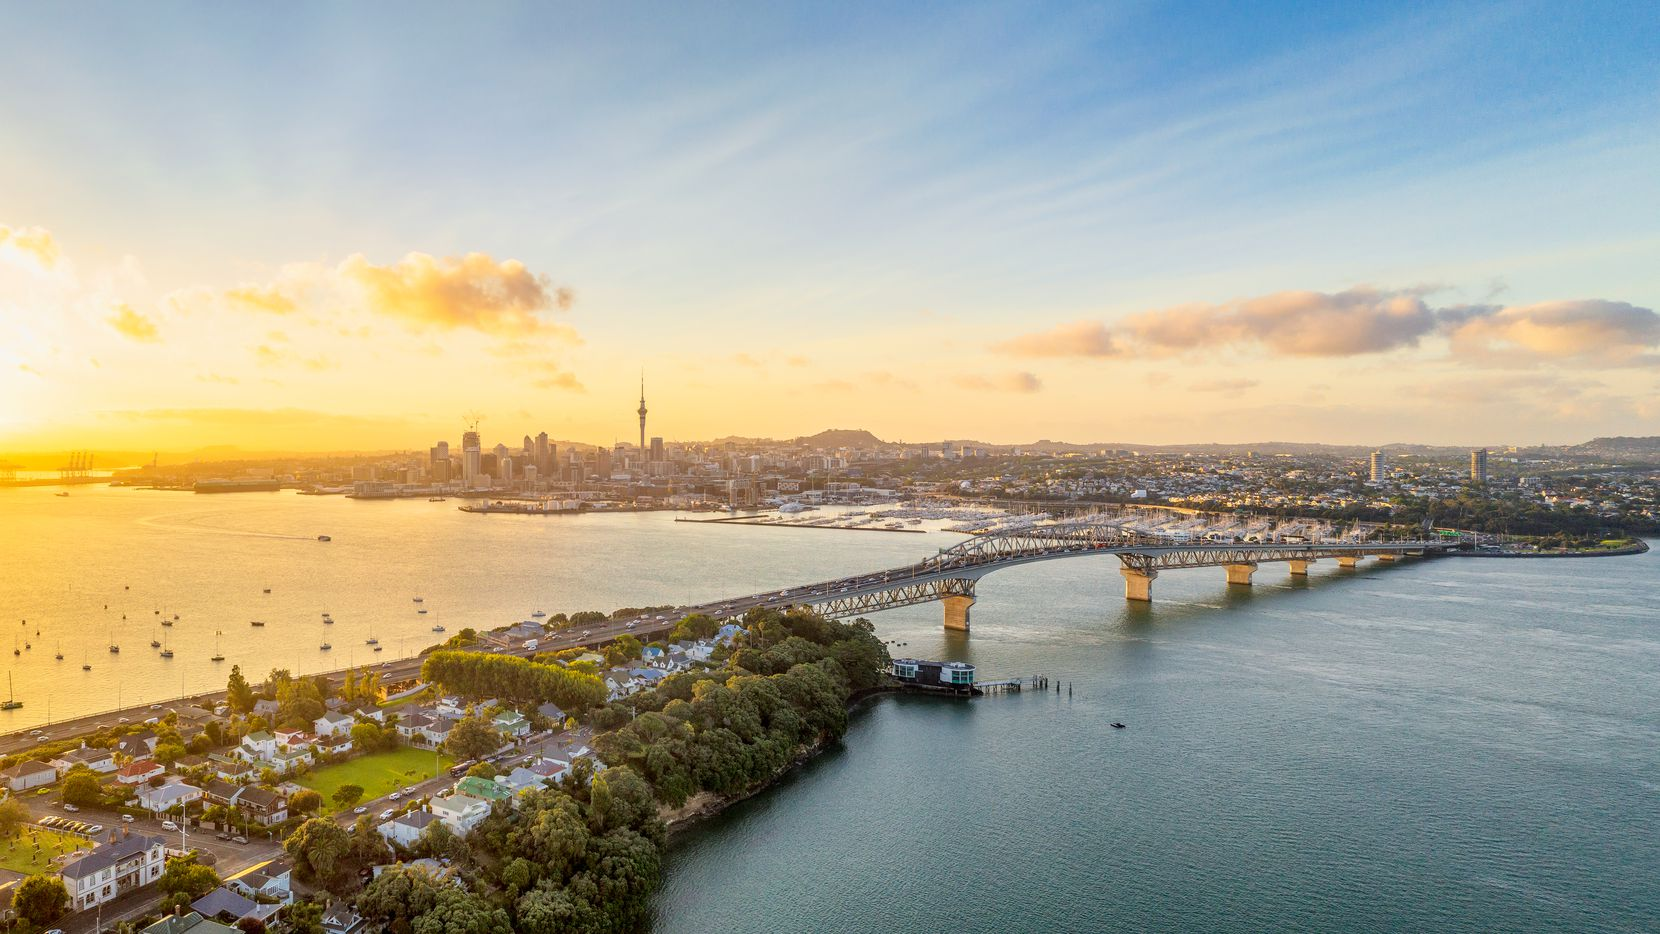 A panoramic image from above of Auckland, with the Sky Tower and CBD visible across Waitemata Harbor and the Auckland Harbour Bridge. American will start flying to the New Zealand city in October 2020.